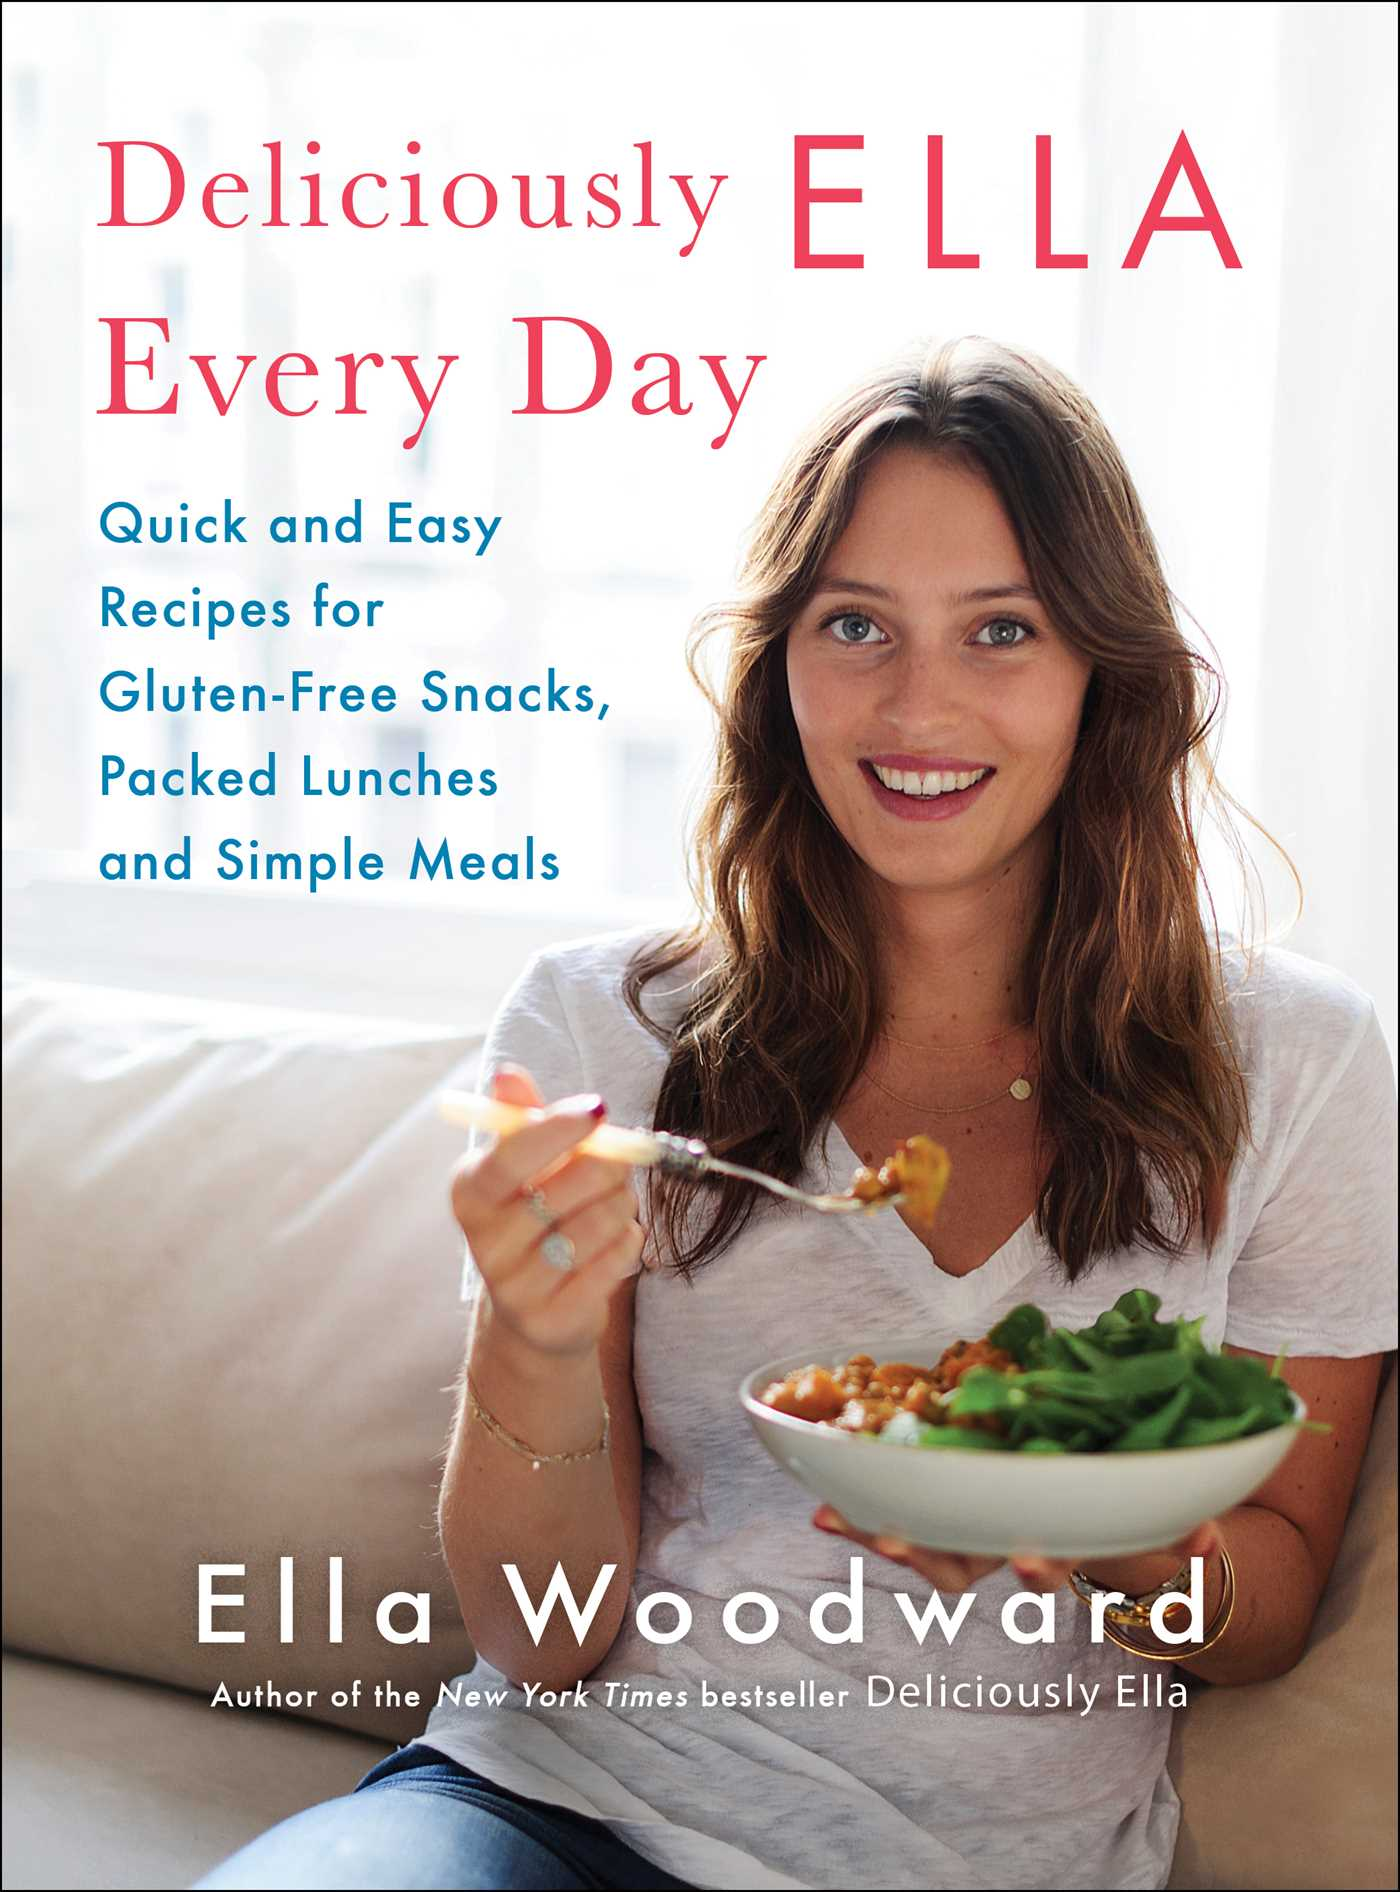 Deliciously ella every day 9781501127618 hr